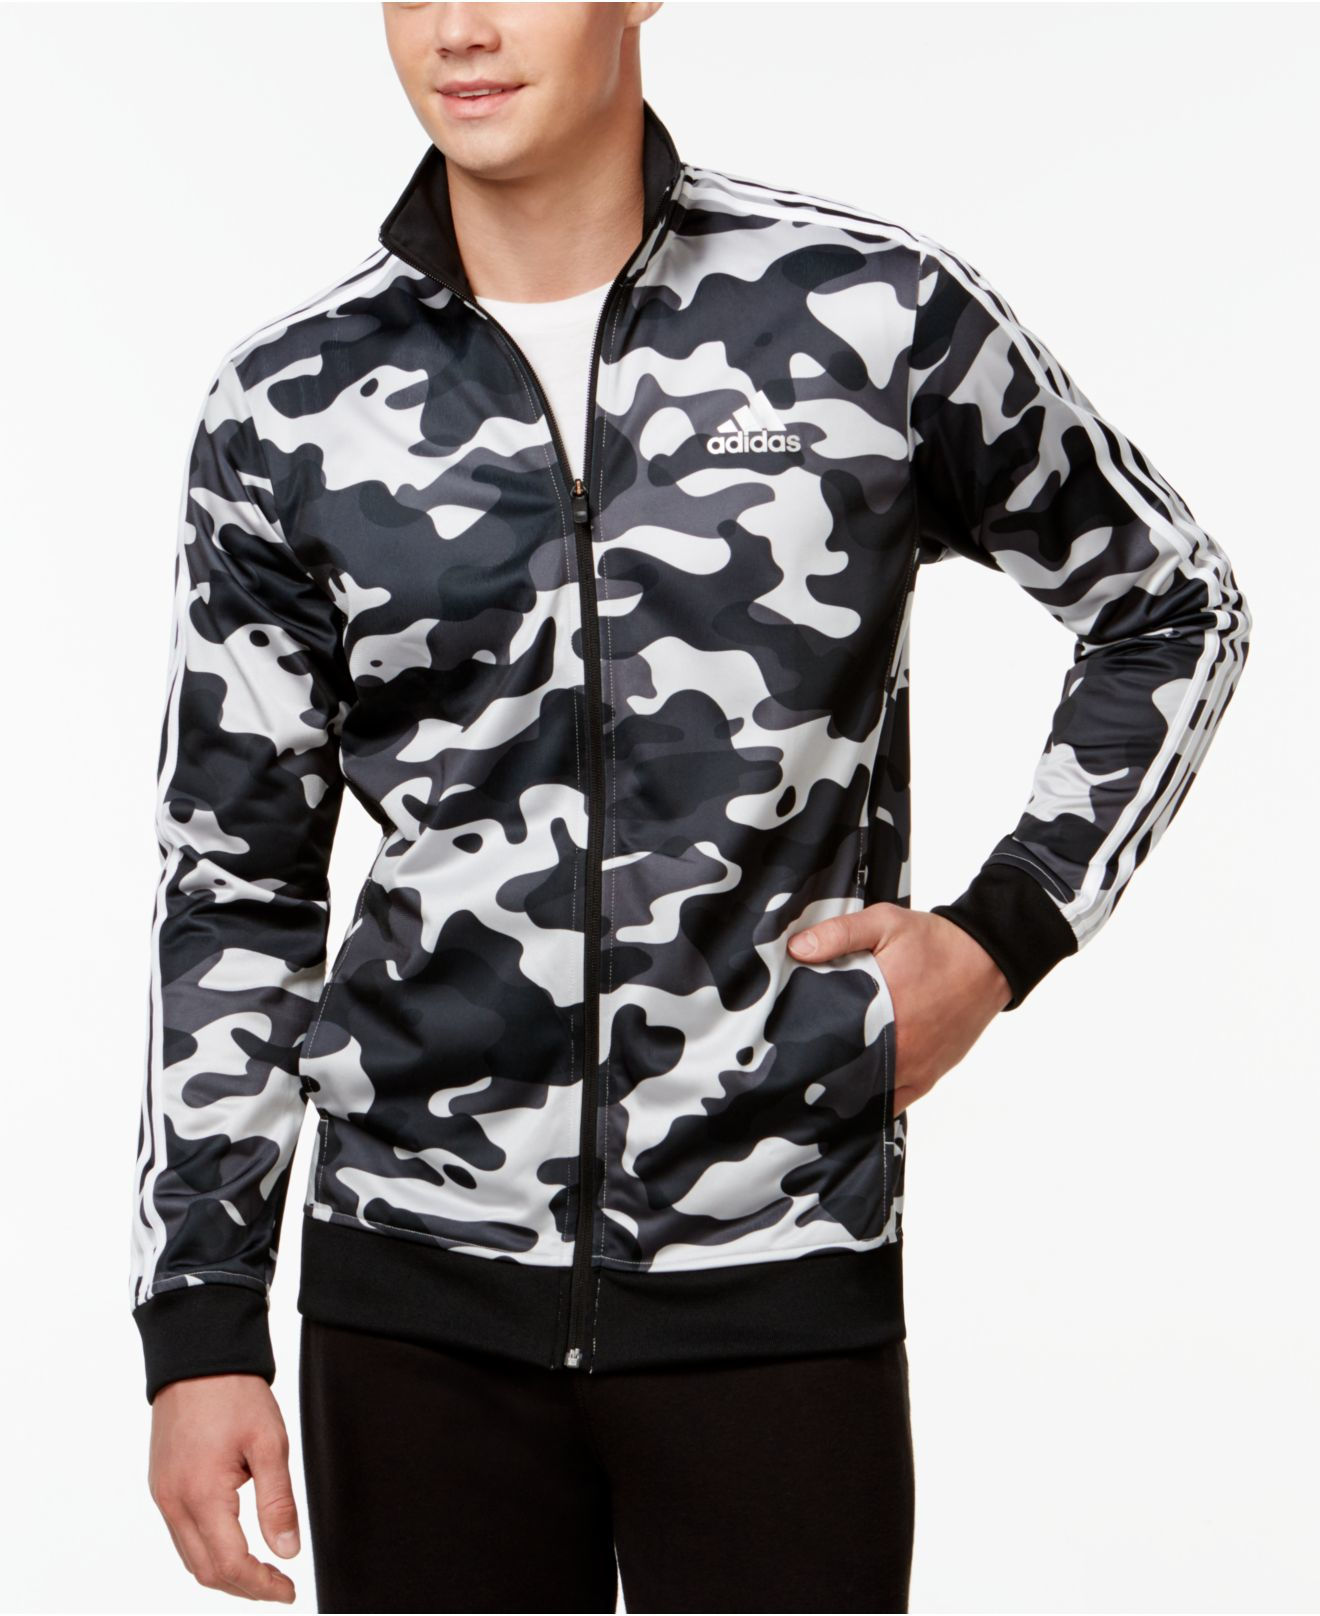 adidas originals men 39 s camo print track jacket in gray for men lyst. Black Bedroom Furniture Sets. Home Design Ideas